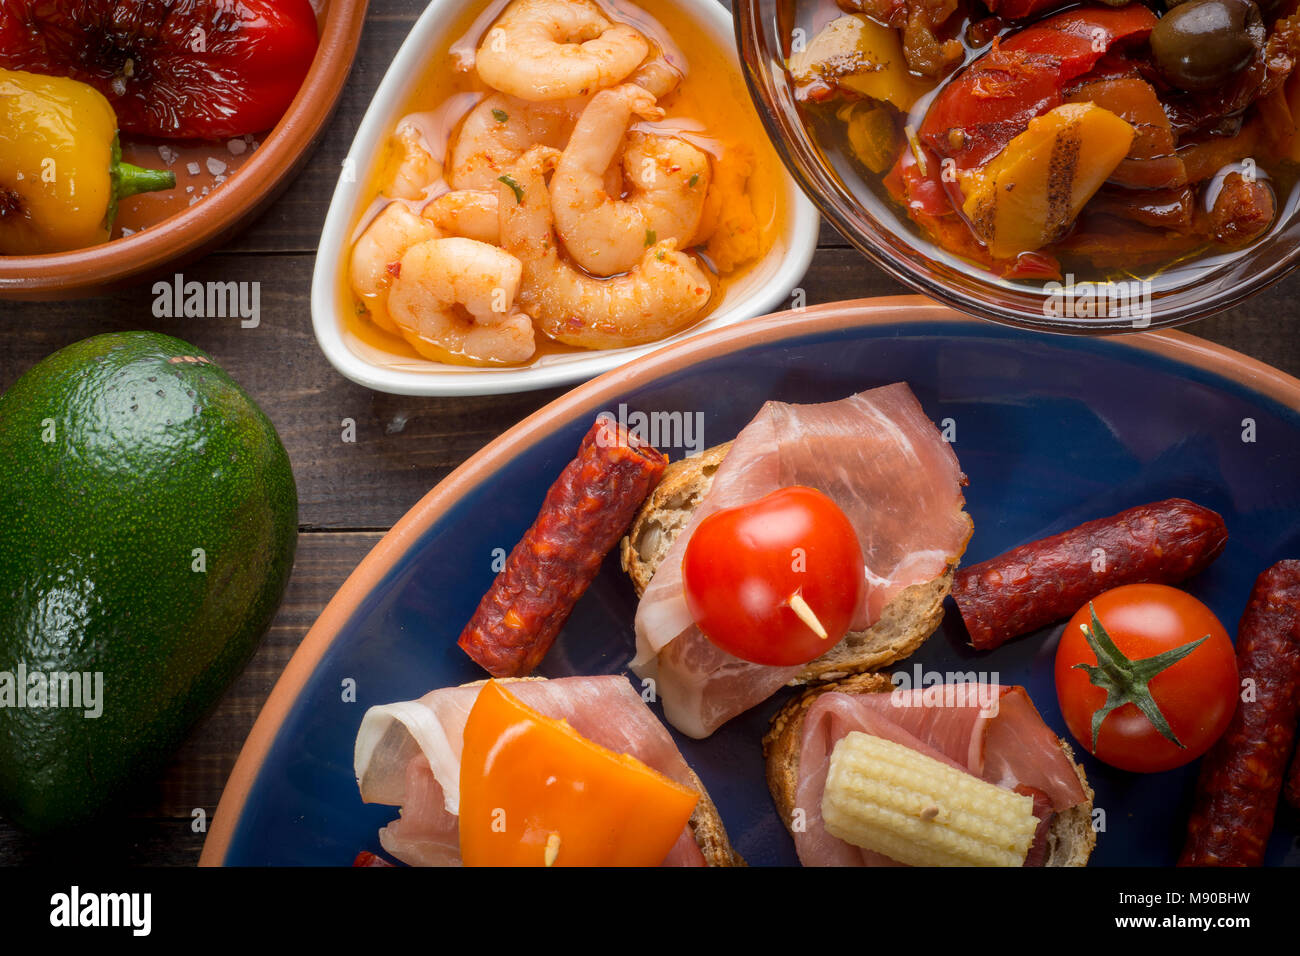 Mixed spanish tapas starters on table. Open sandwiches, shrimps, pickled vegetables. Top view - Stock Image